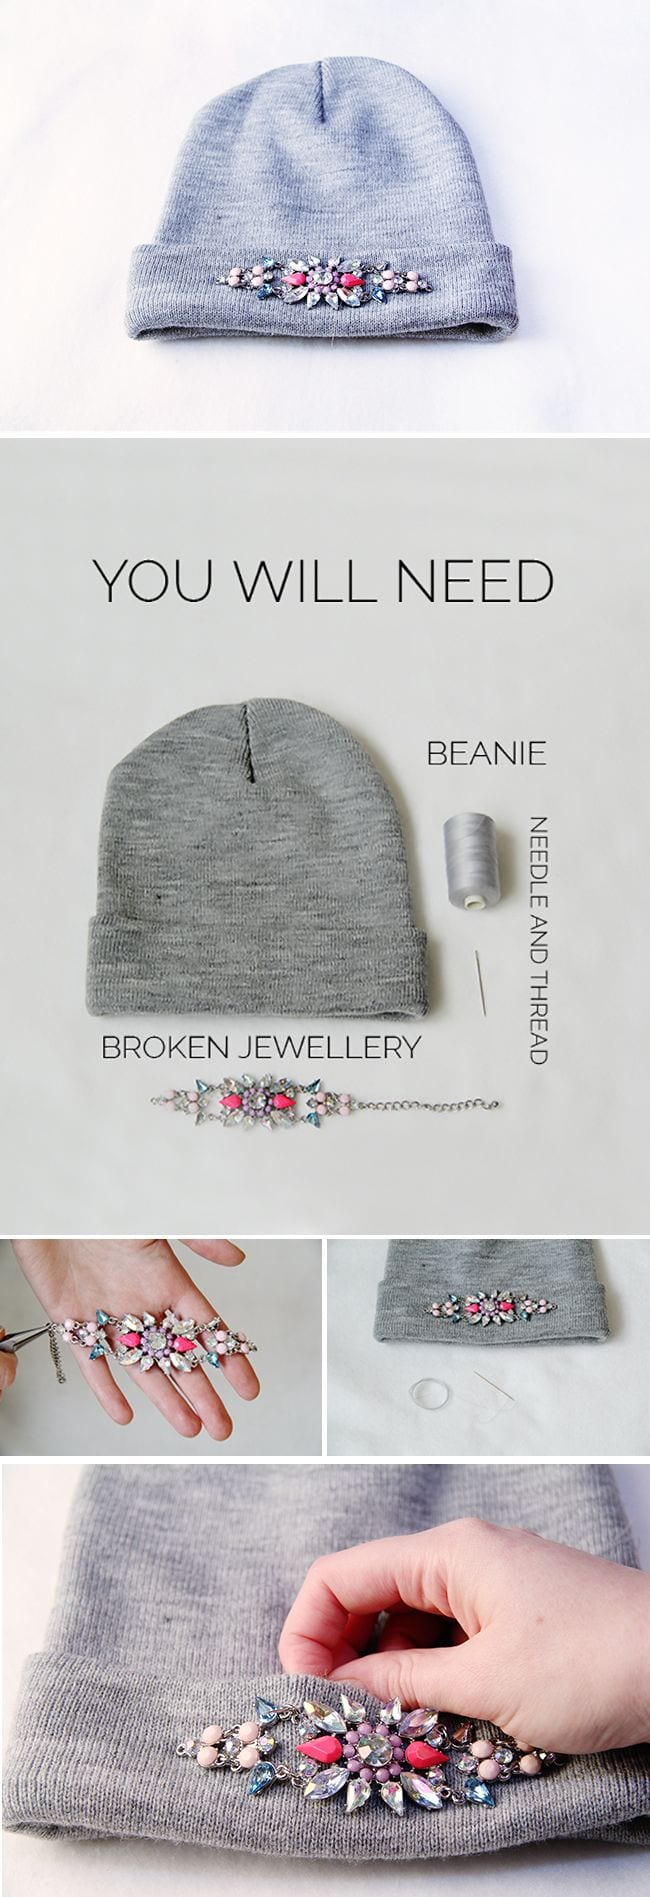 DIY-Rhinestones-Beanie-Tutorial Top 50 DIY Winter Fashion Projects With Simple Tutorials